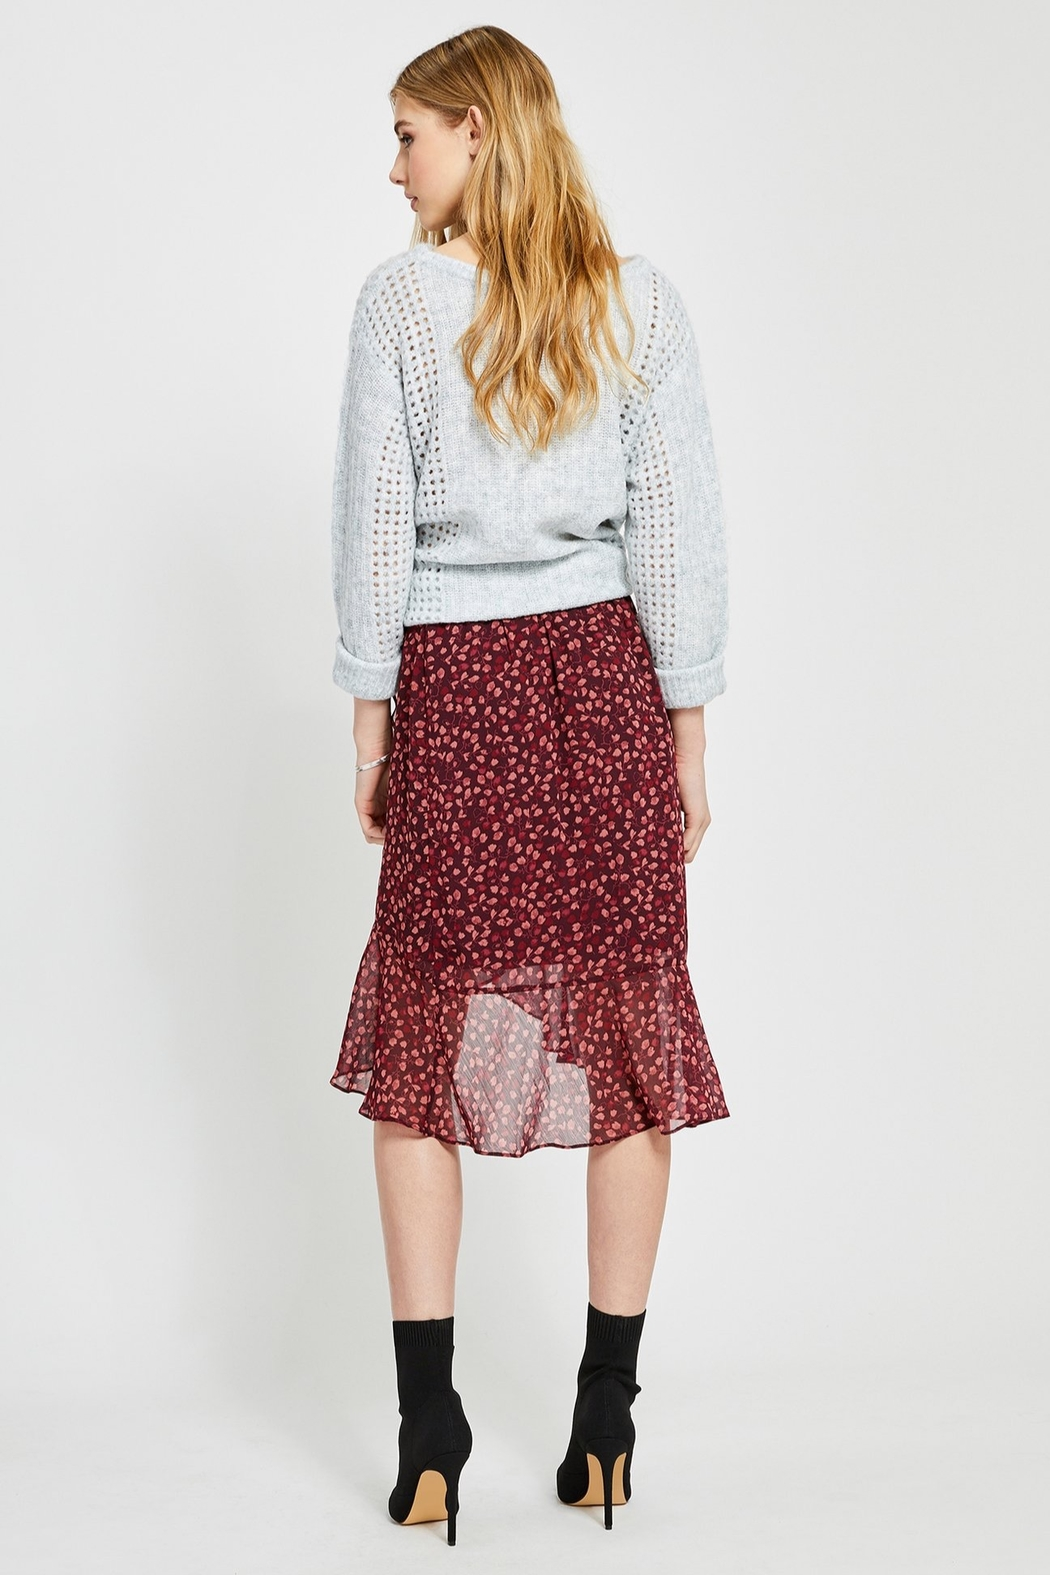 Gentle Fawn Xena Ruffle Skirt - Side Cropped Image